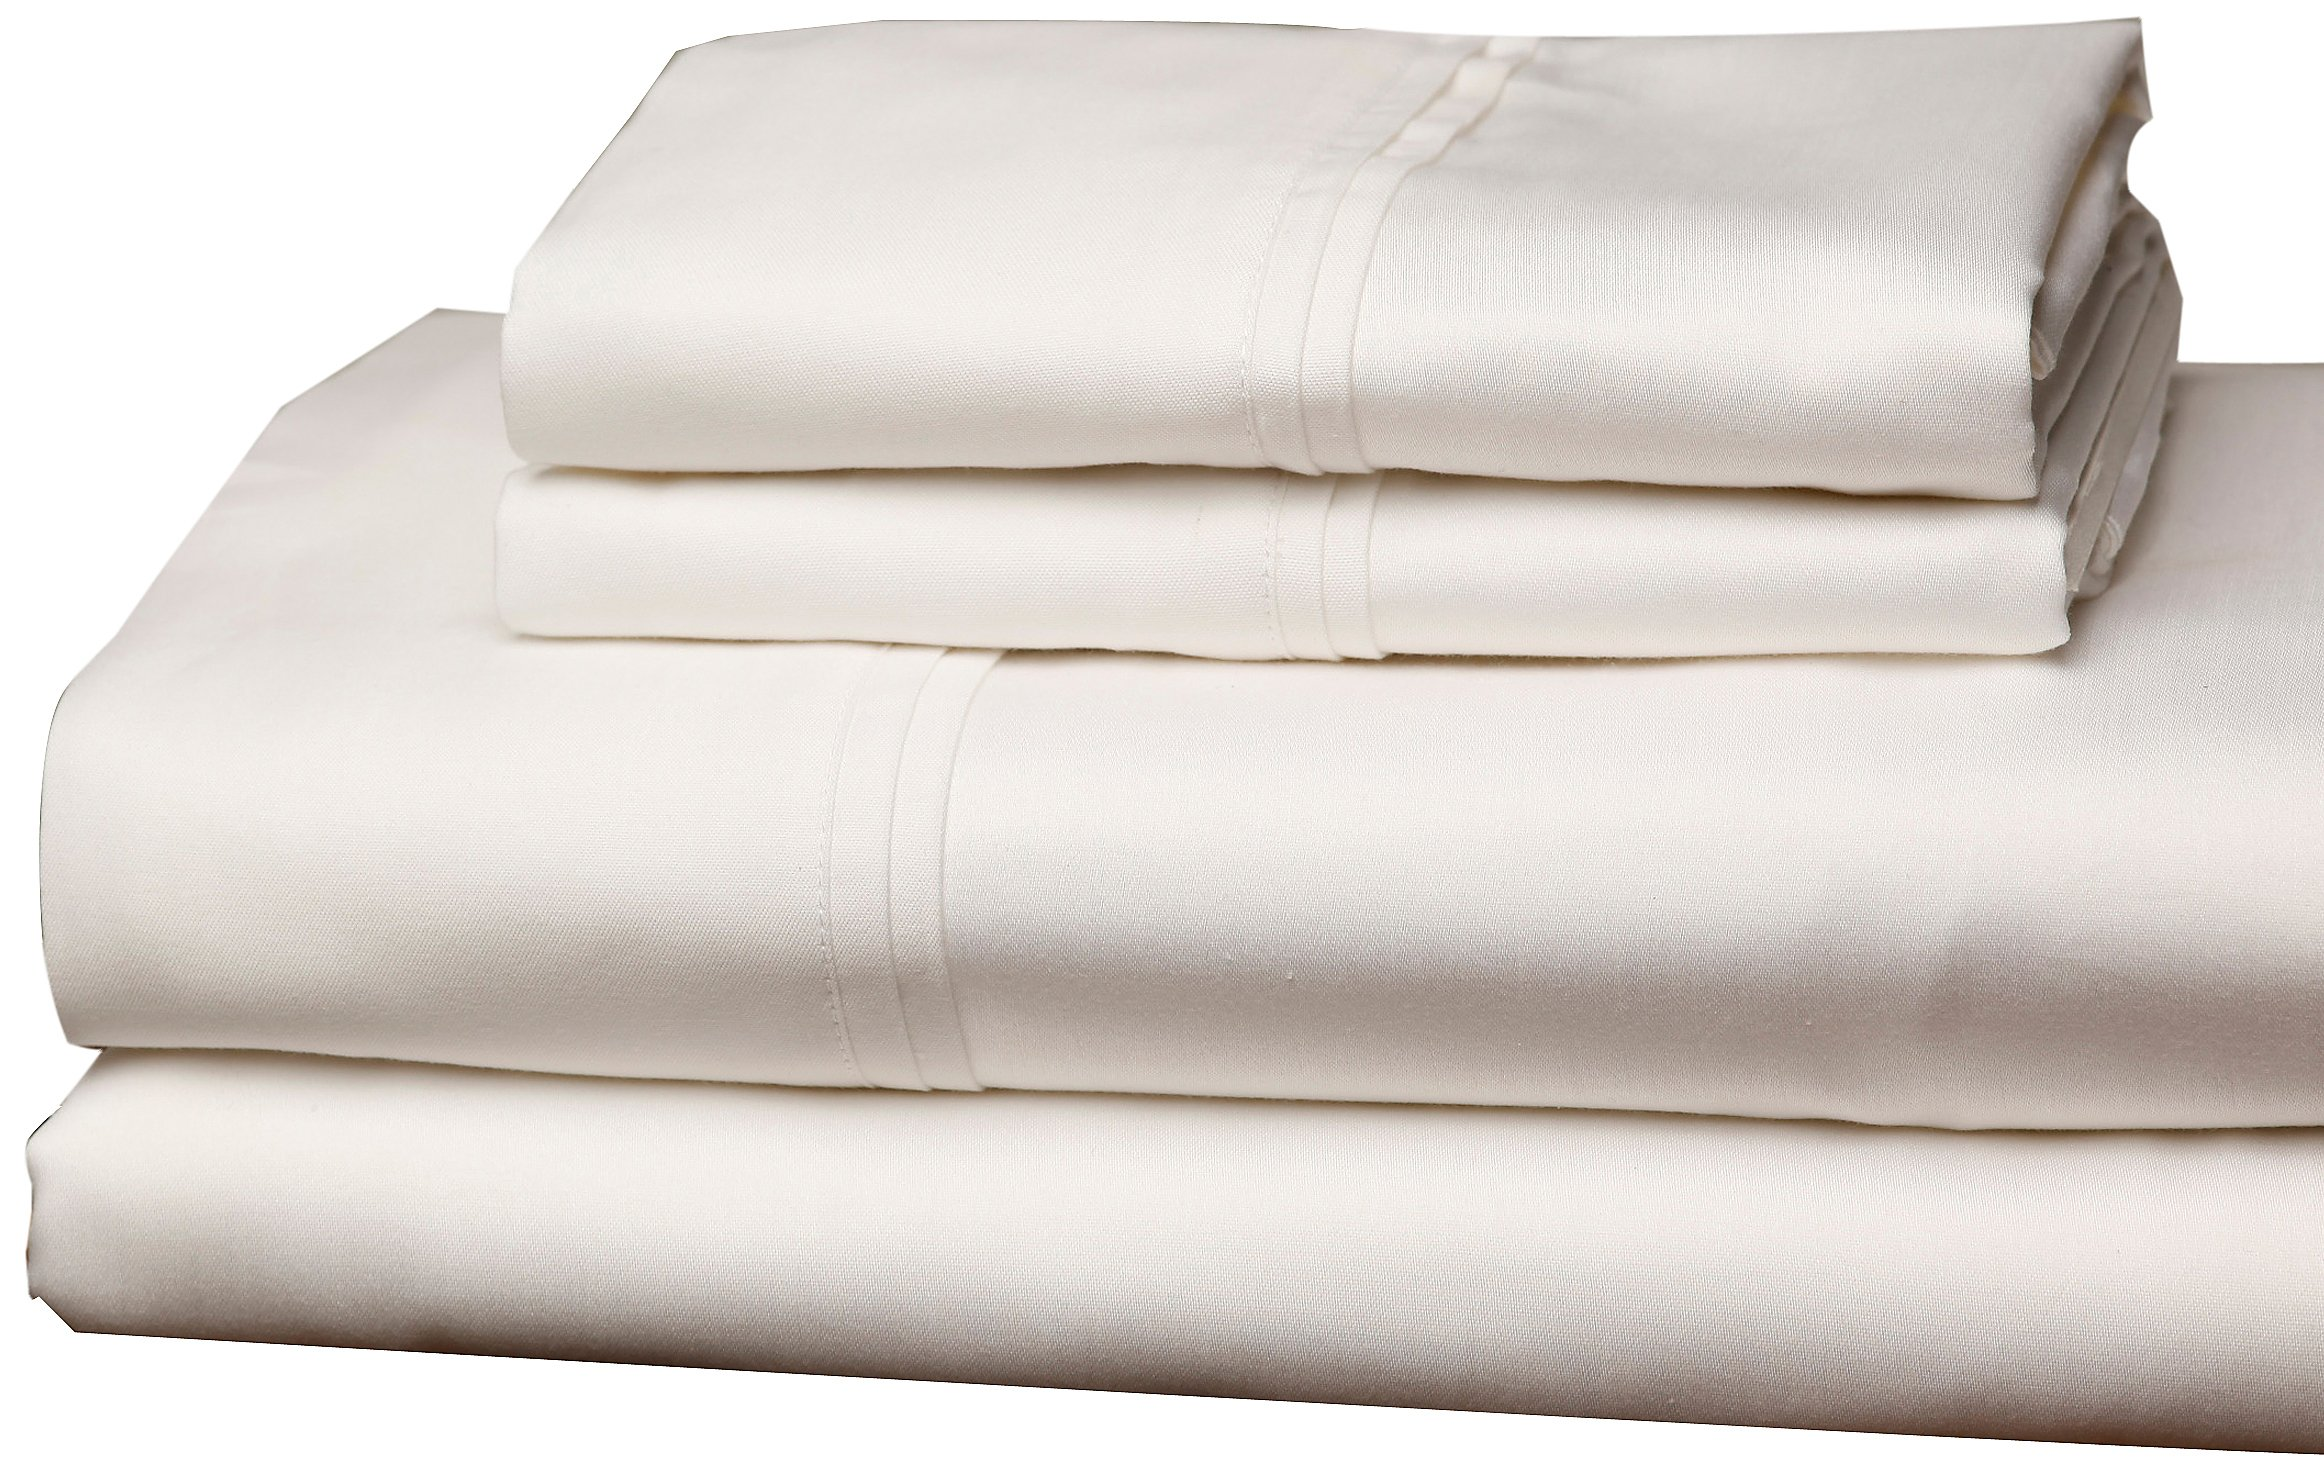 Fashion Bed Group QH0303 Soothing Ivory 4-Piece T310 Home Collection Bed Sheet Set with 310-Thread Count Fabric, Split Cal King